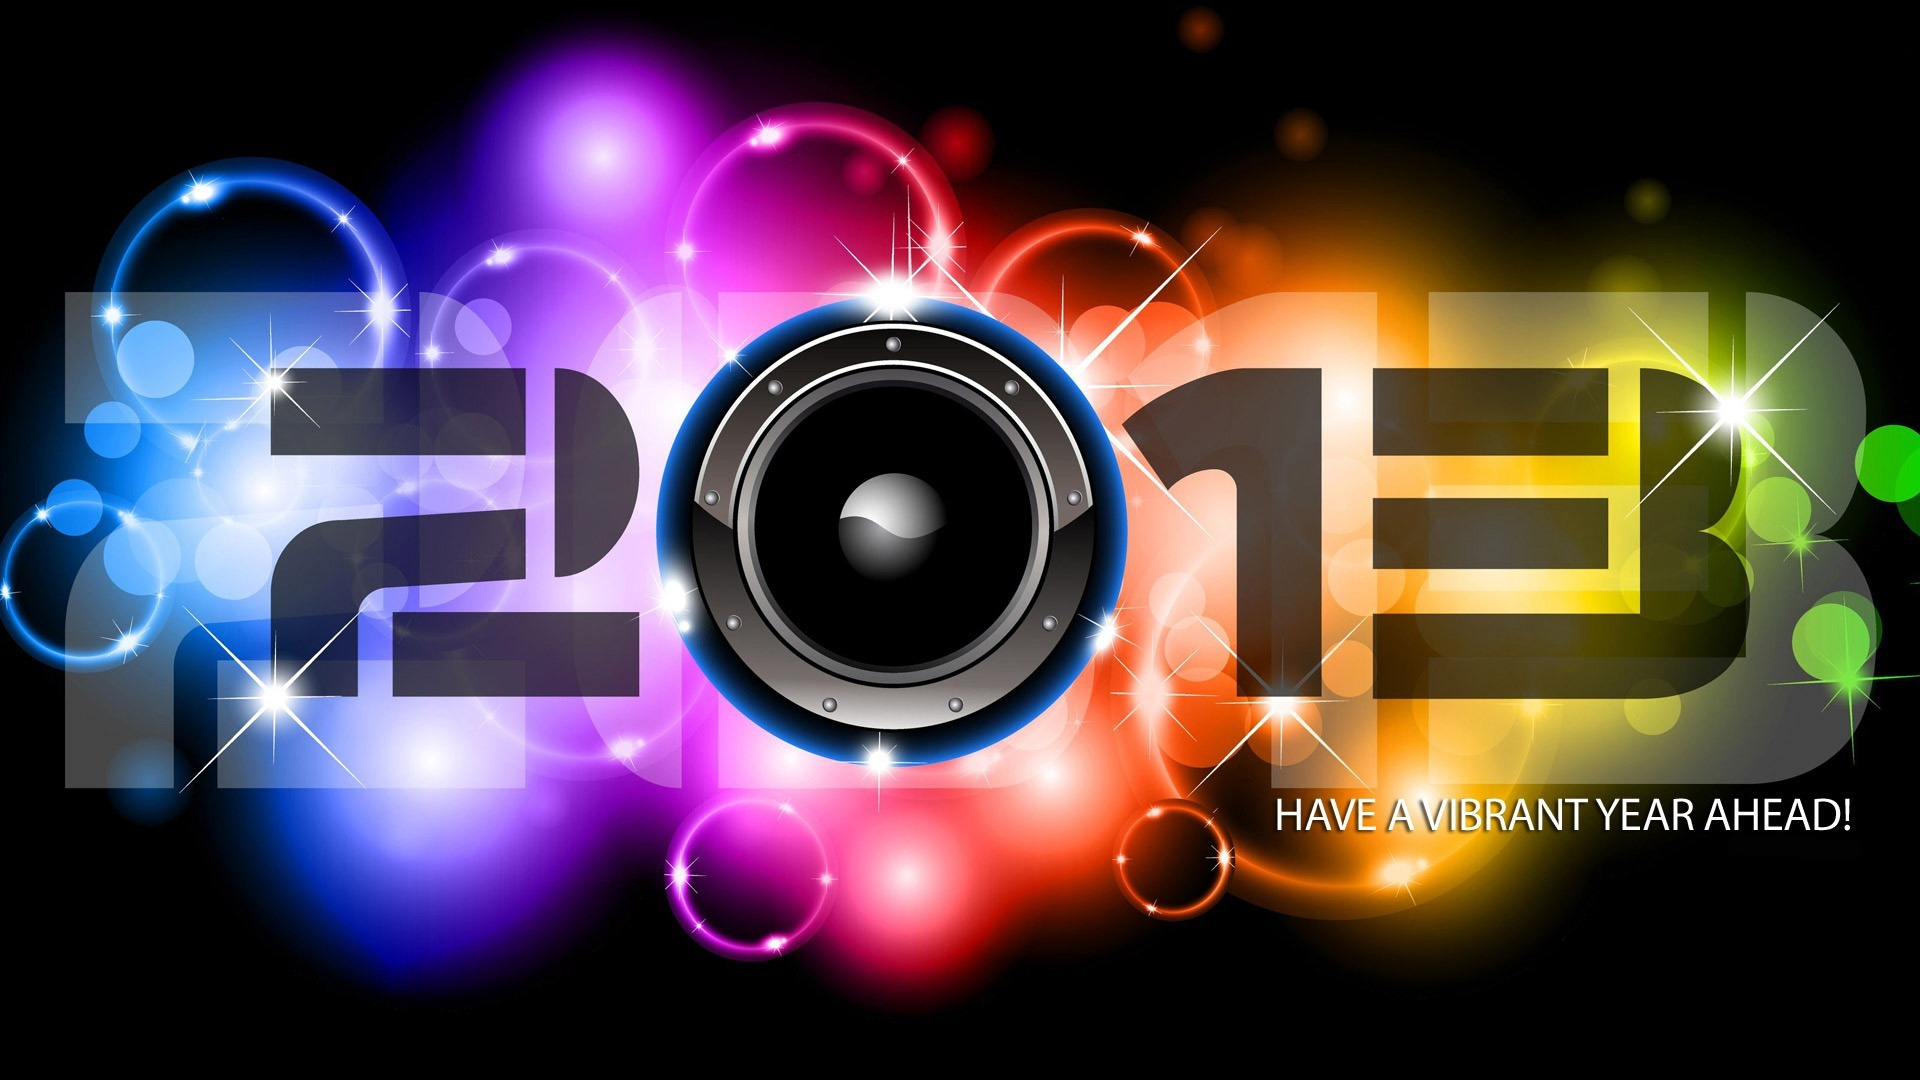 http://psdreview.com/wp-content/uploads/2012/12/2013-happy-new-year-wallpaper-16.jpg